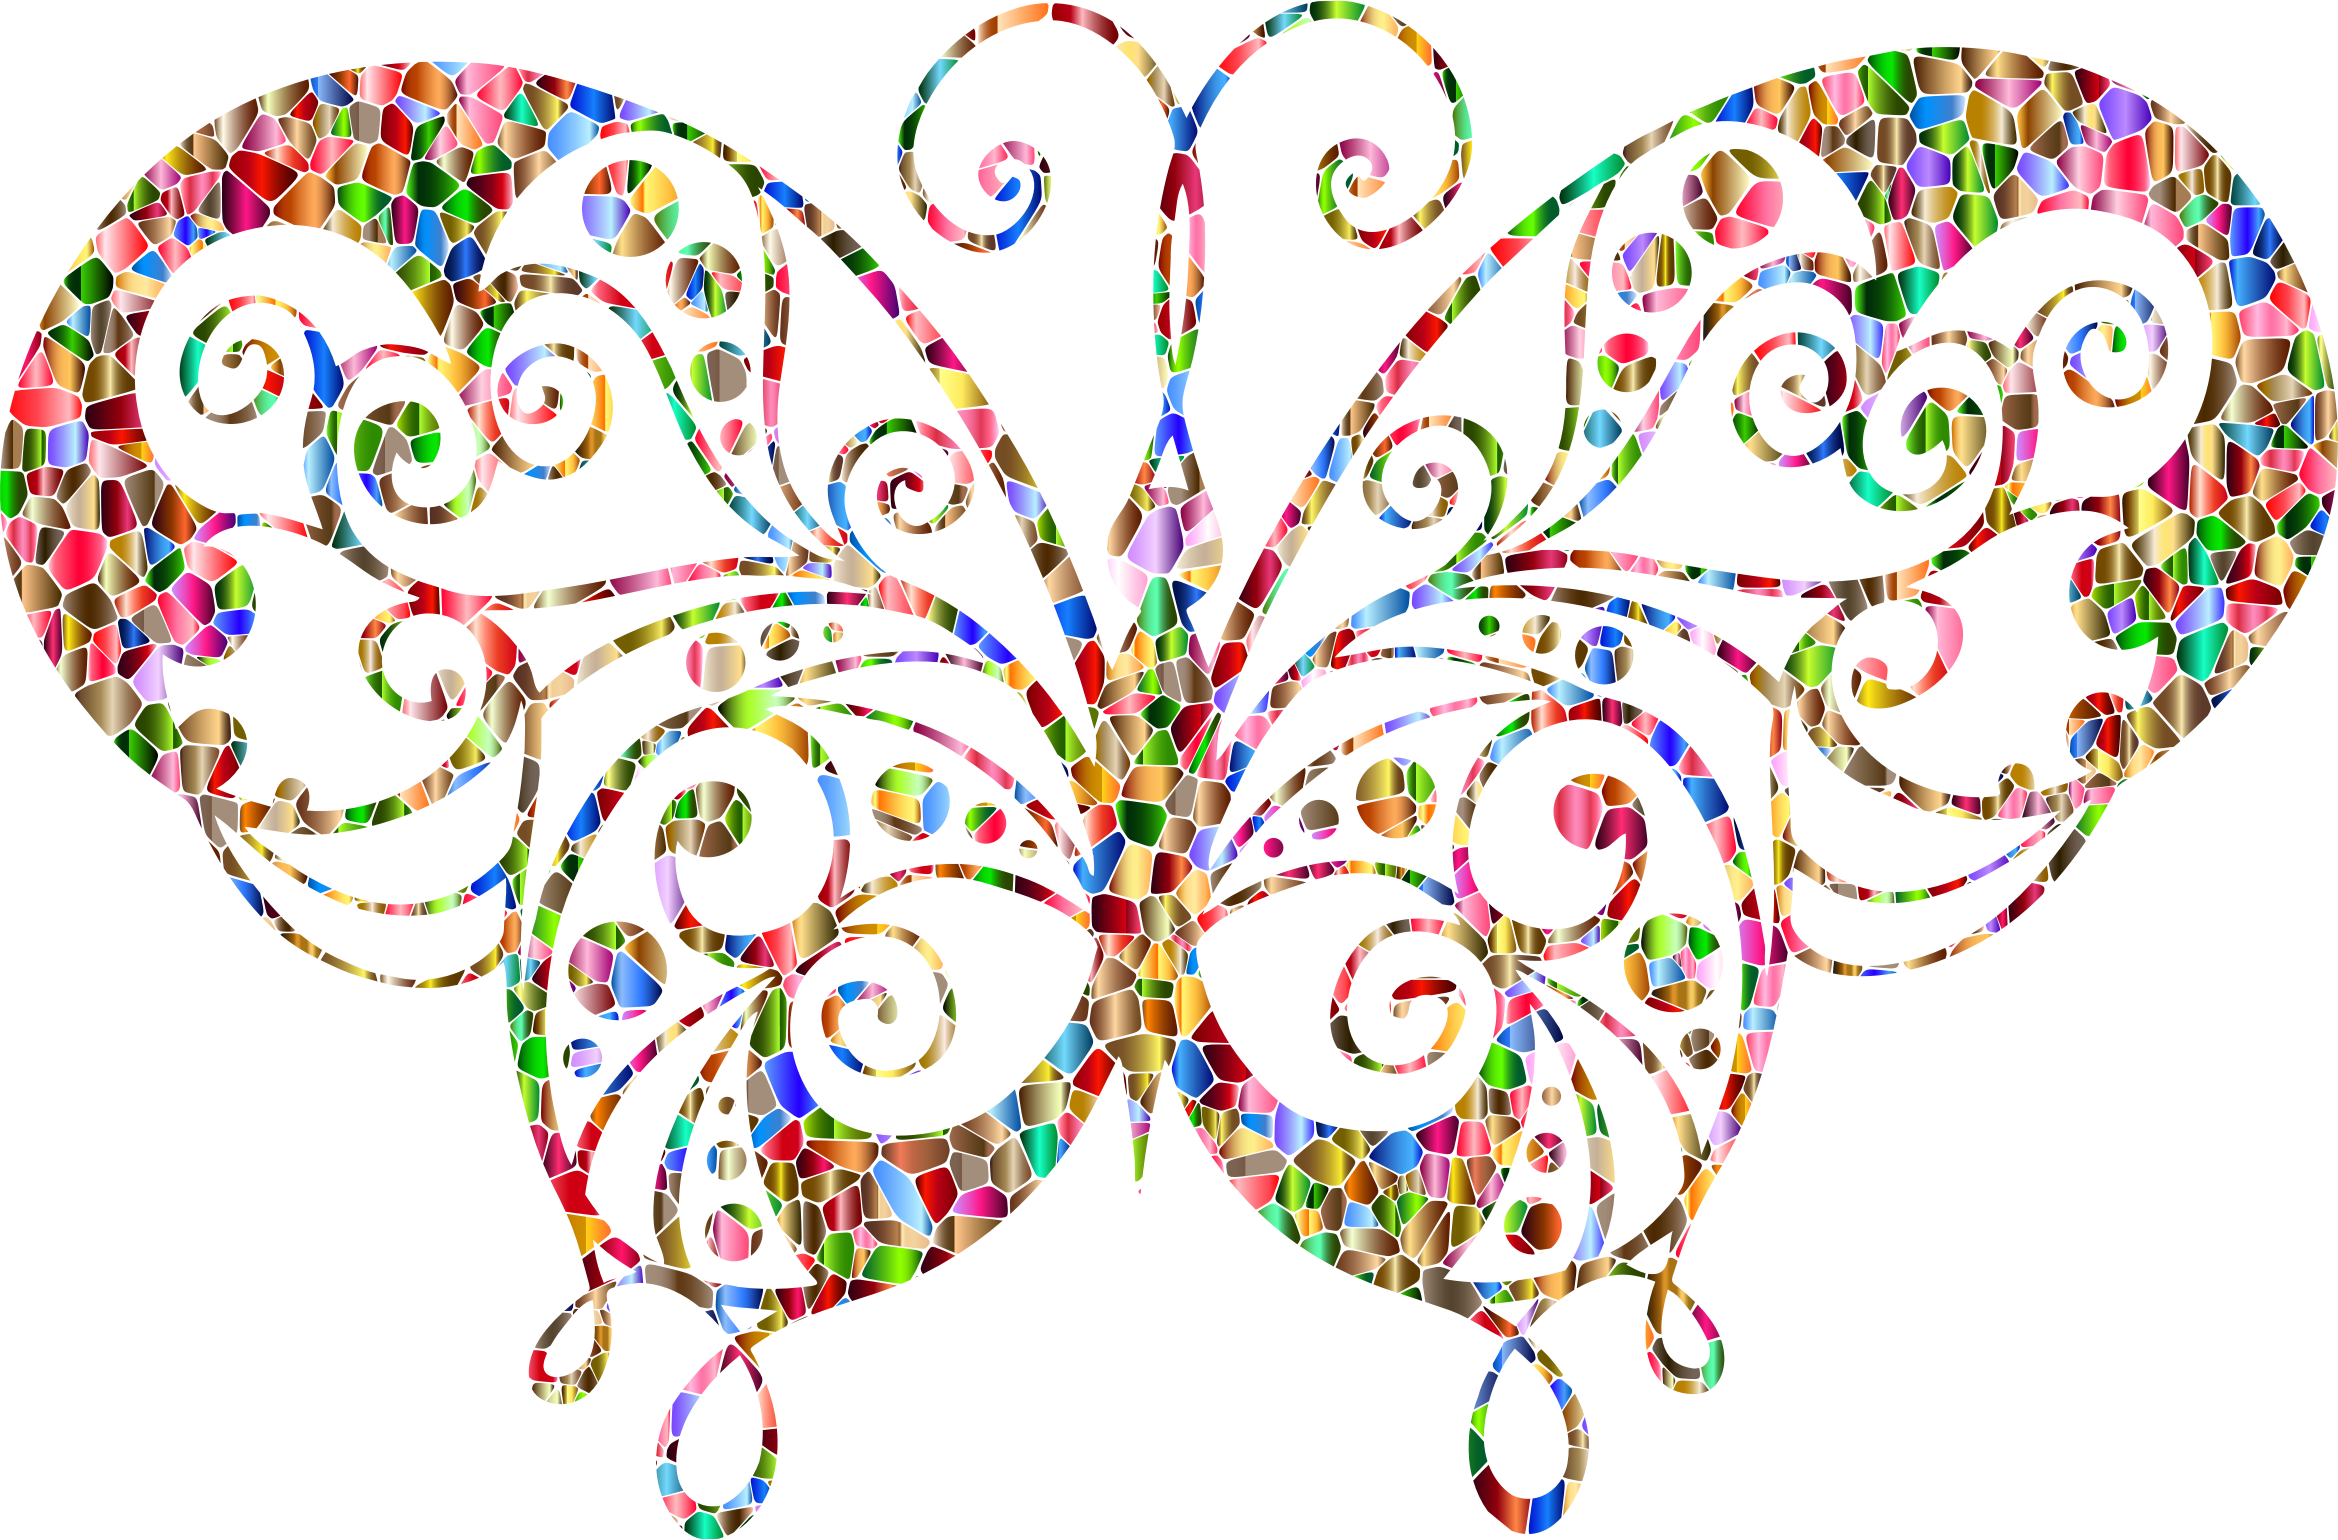 Chromatic Tiled Flourish Butterfly Silhouette by GDJ